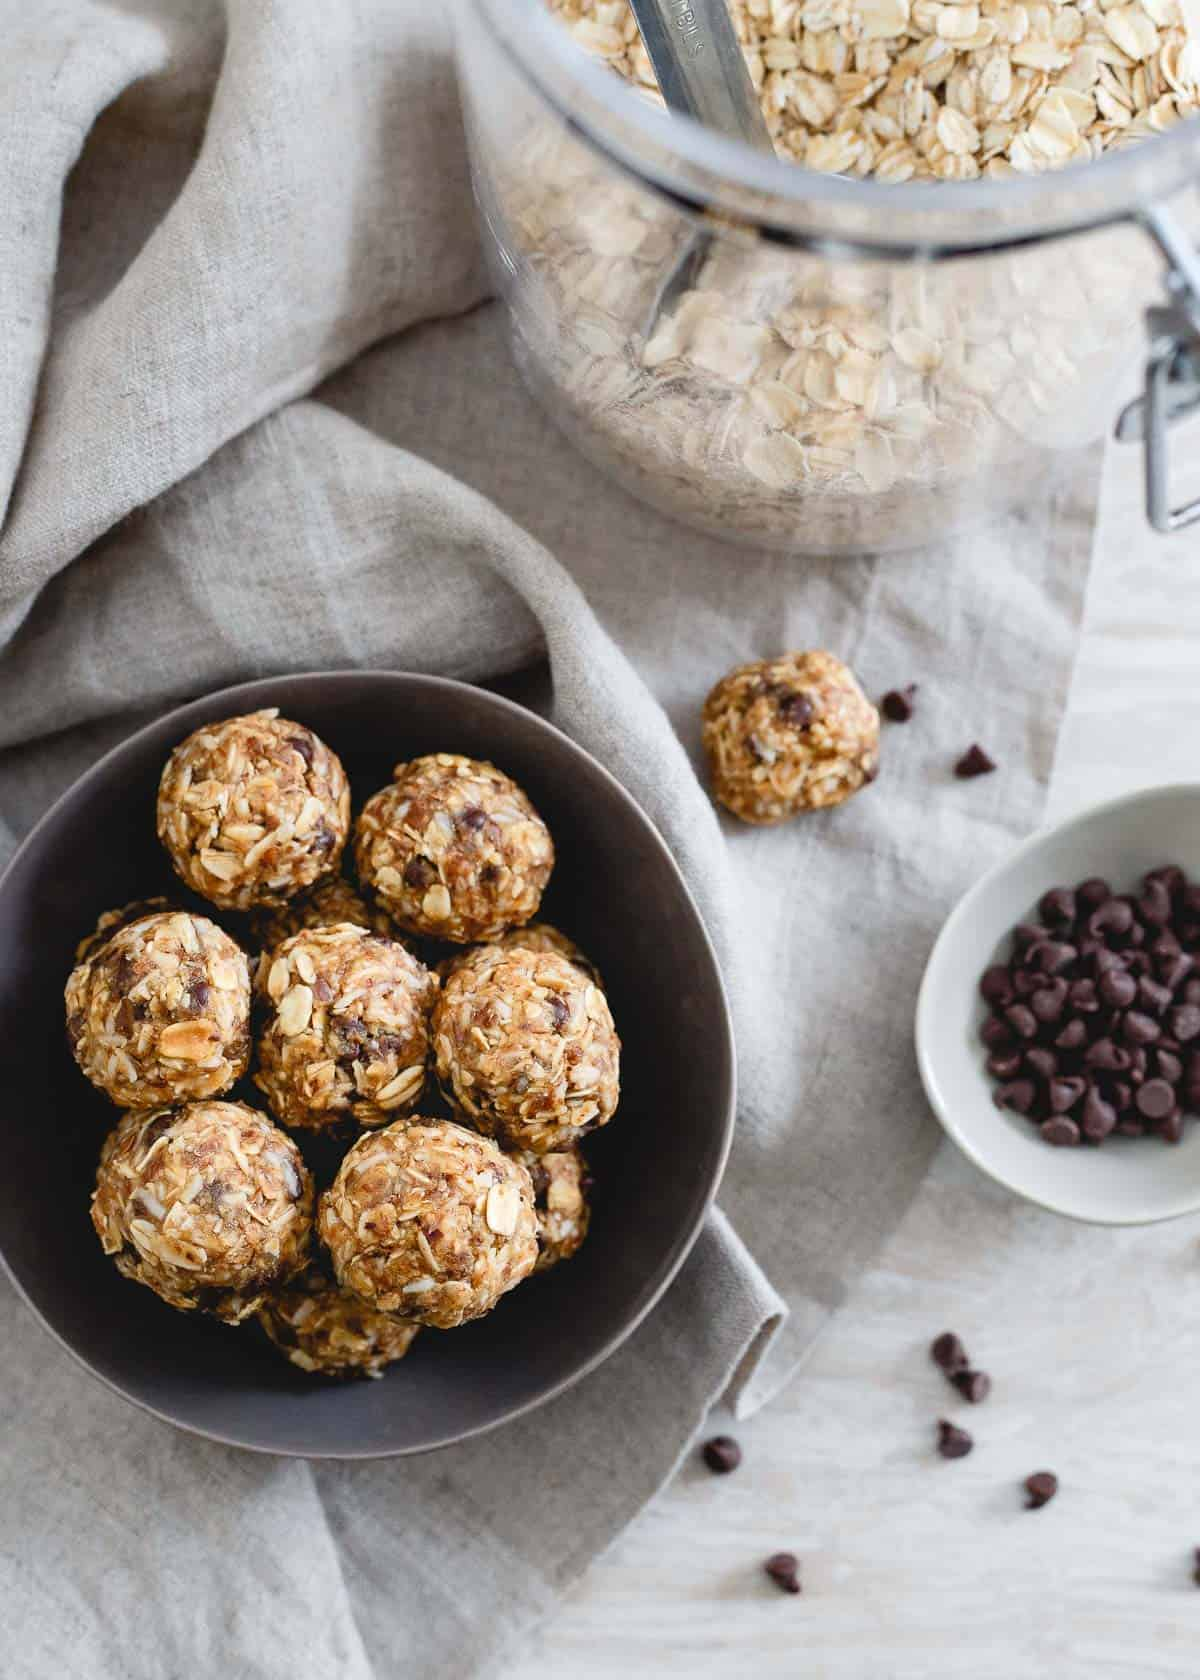 Made with oats, coconut and peanut butter, these no bake peanut butter chocolate chip balls are a tasty way to snack!